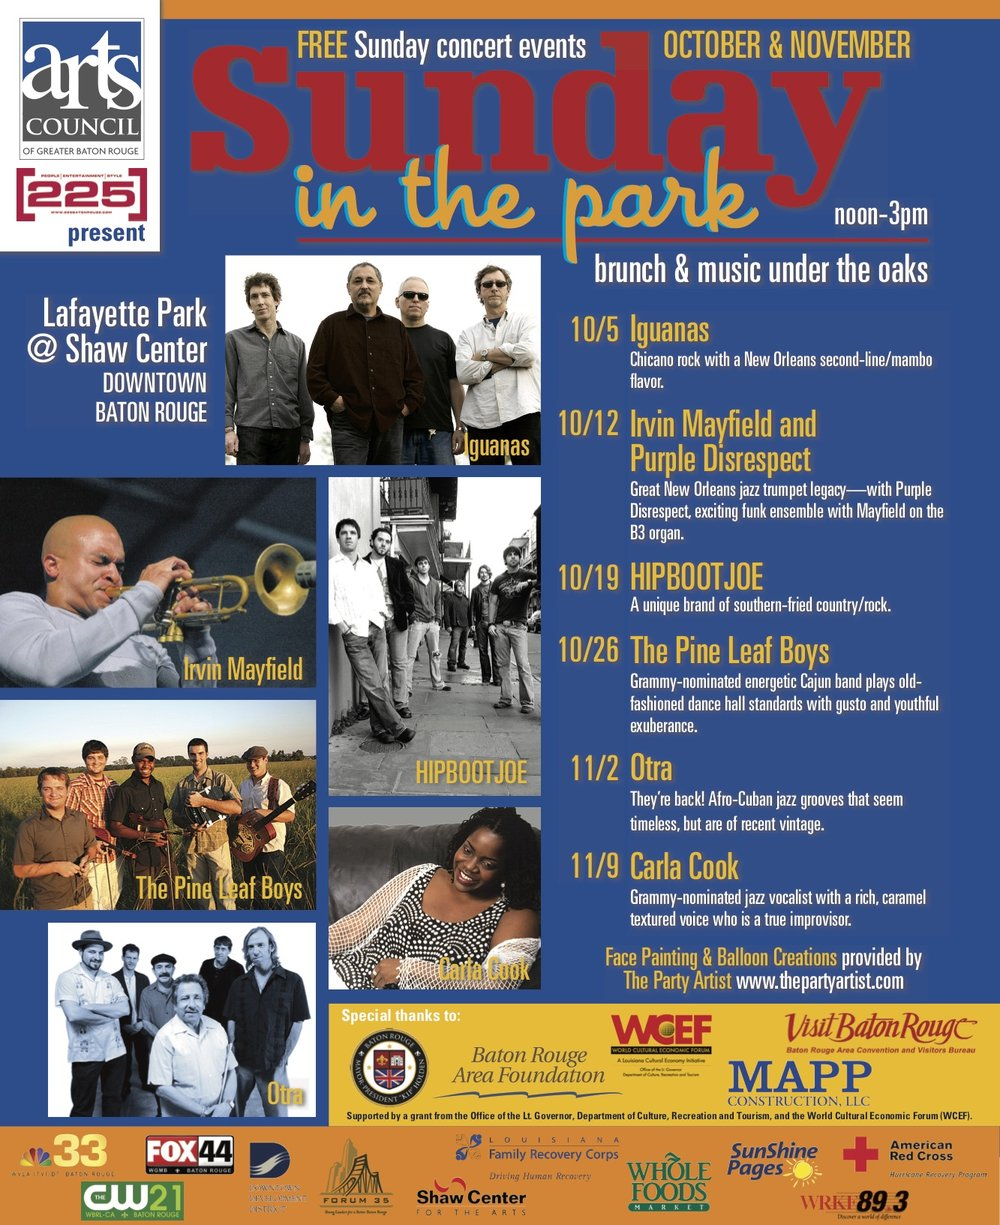 225 Sunday in the Park ad for October 08 issue.jpg